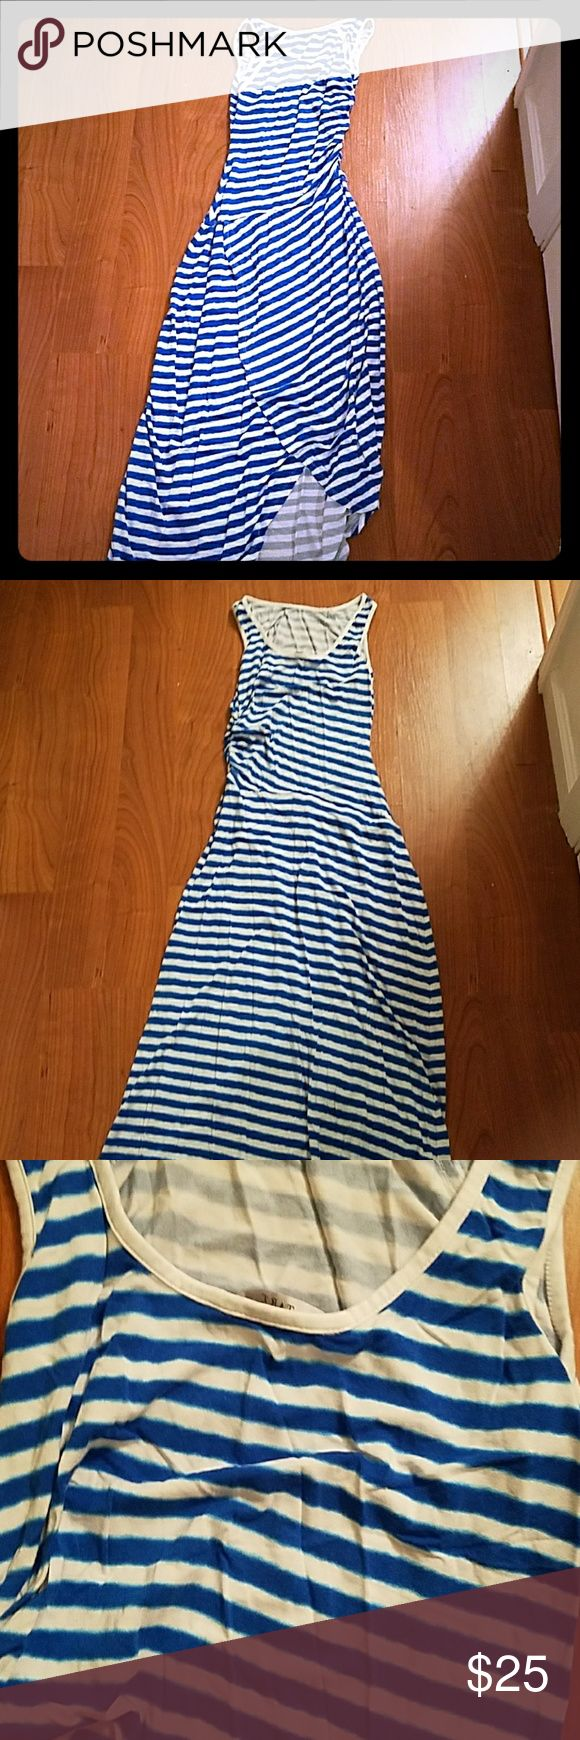 Blue and white maxi dress Pullover style slit in front Tart Dresses Maxi